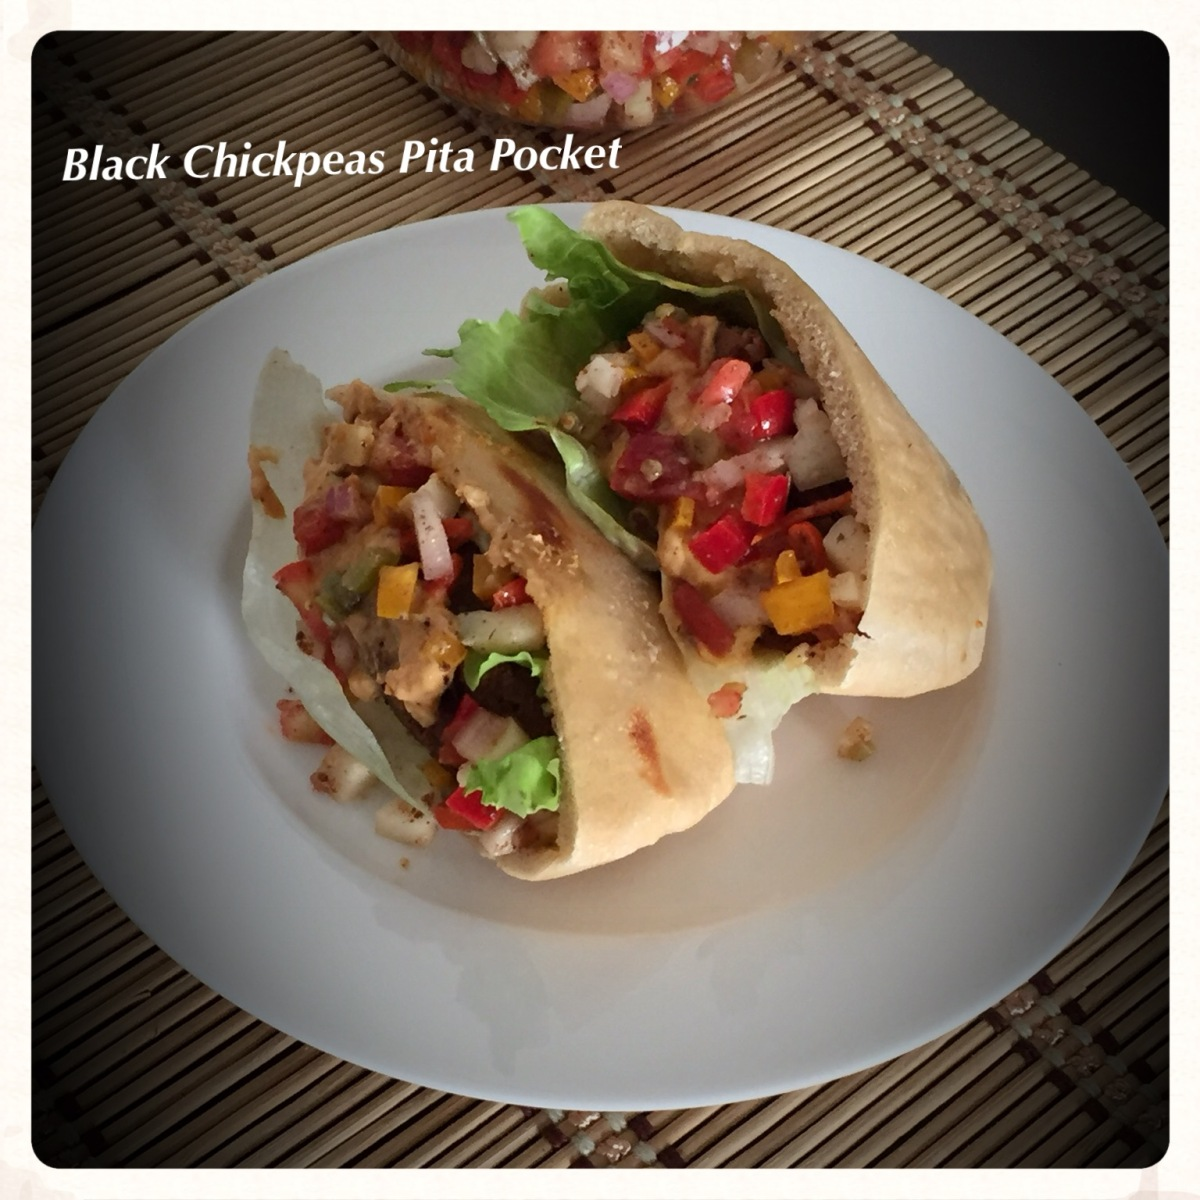 Black Chickpeas Pita Pocket Recipe